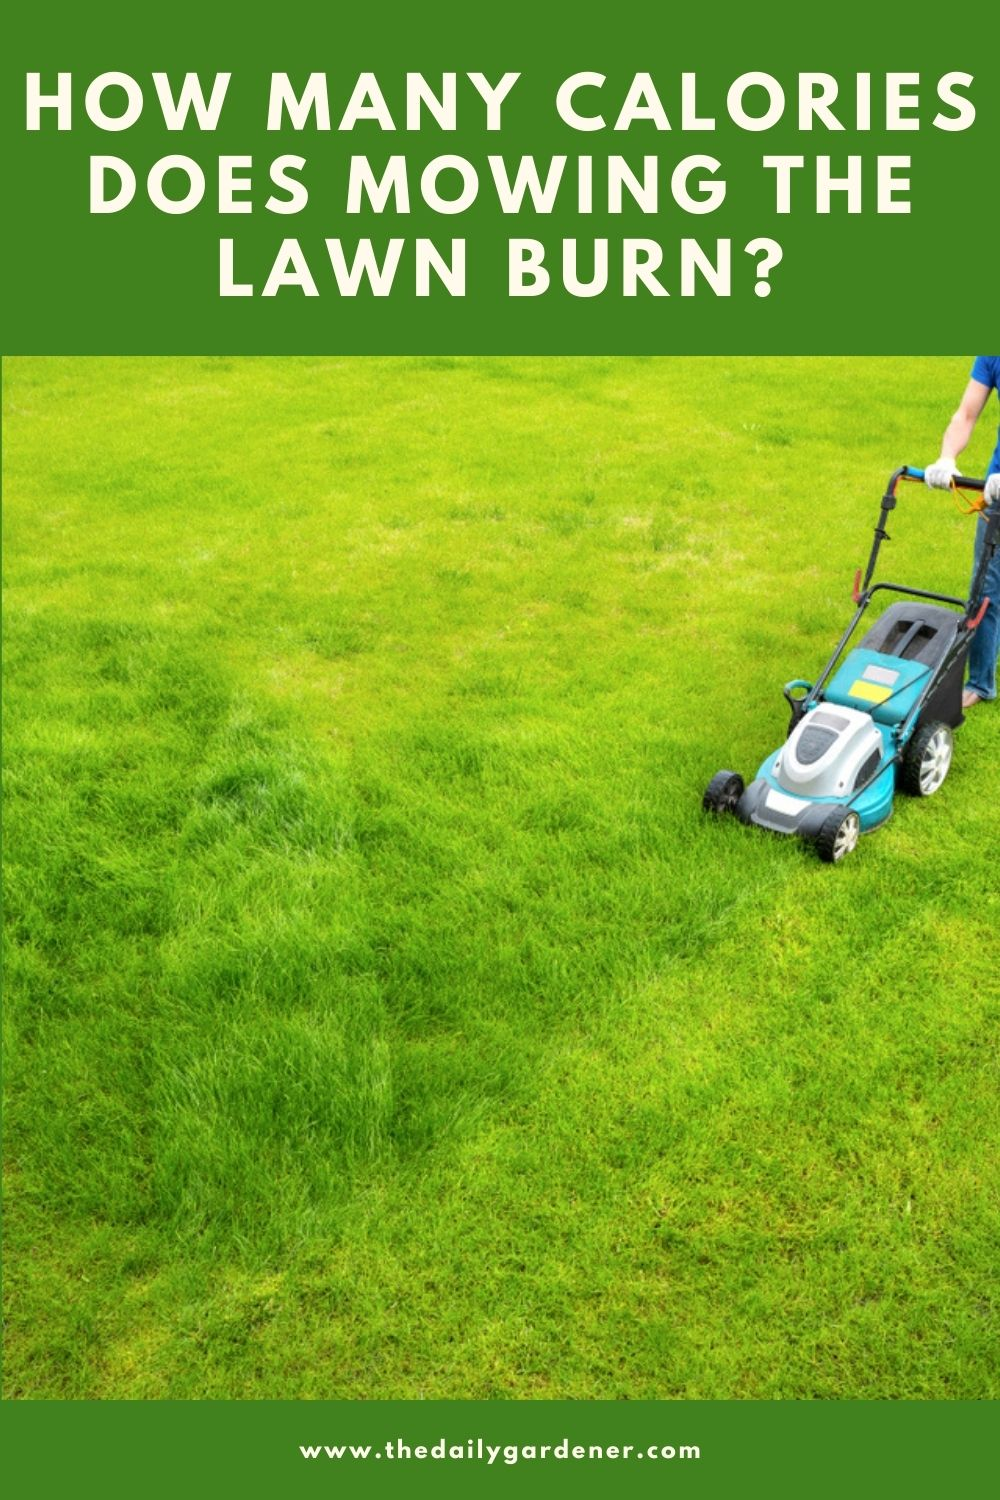 How Many Calories Does Mowing the Lawn Burn 1